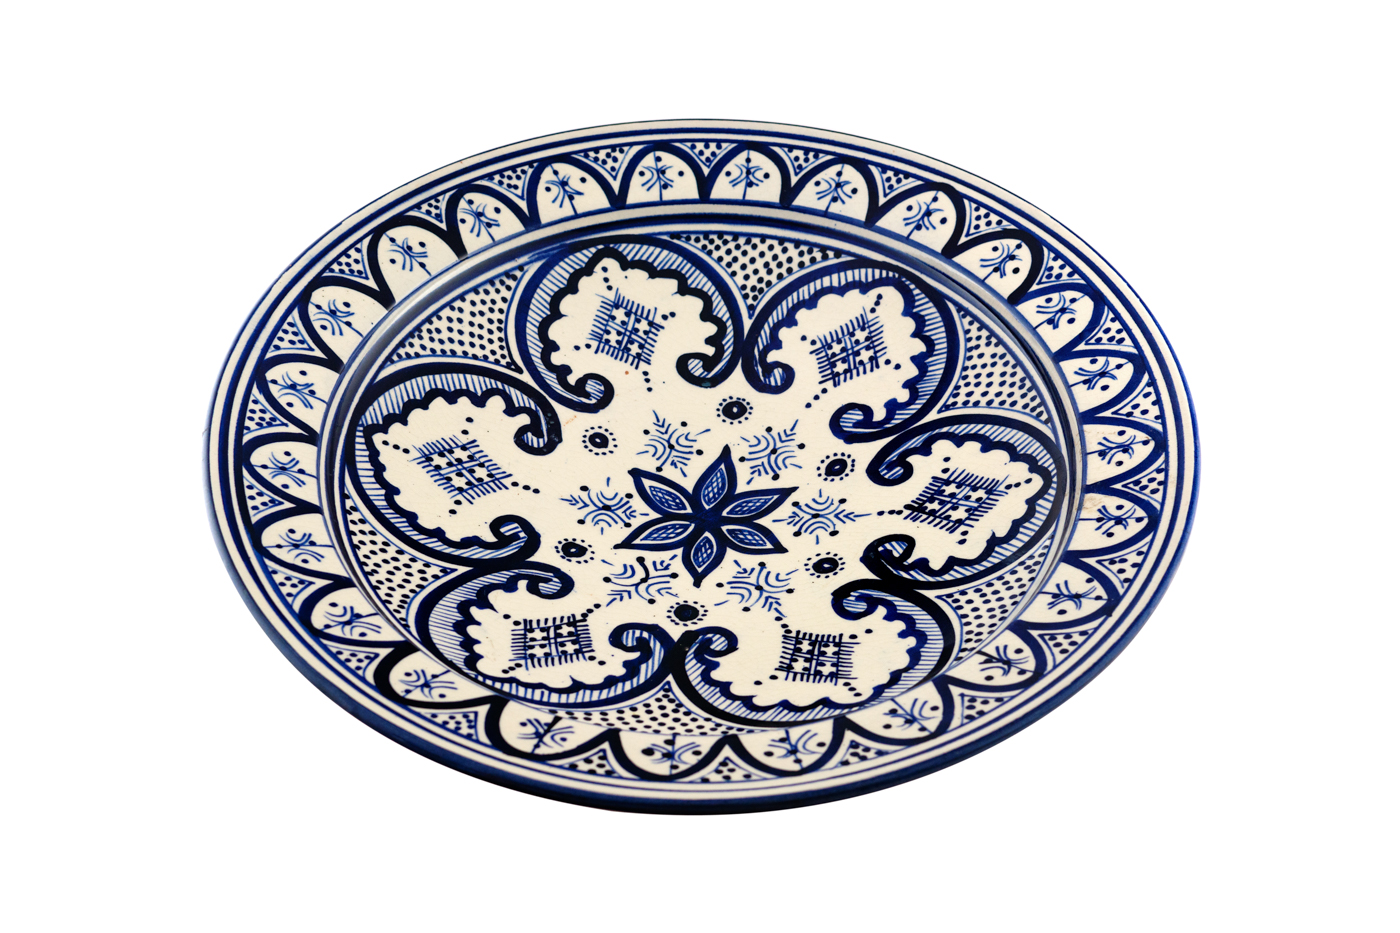 Moroccan painted ceramic plate with floral arabesque designs - White/Blue